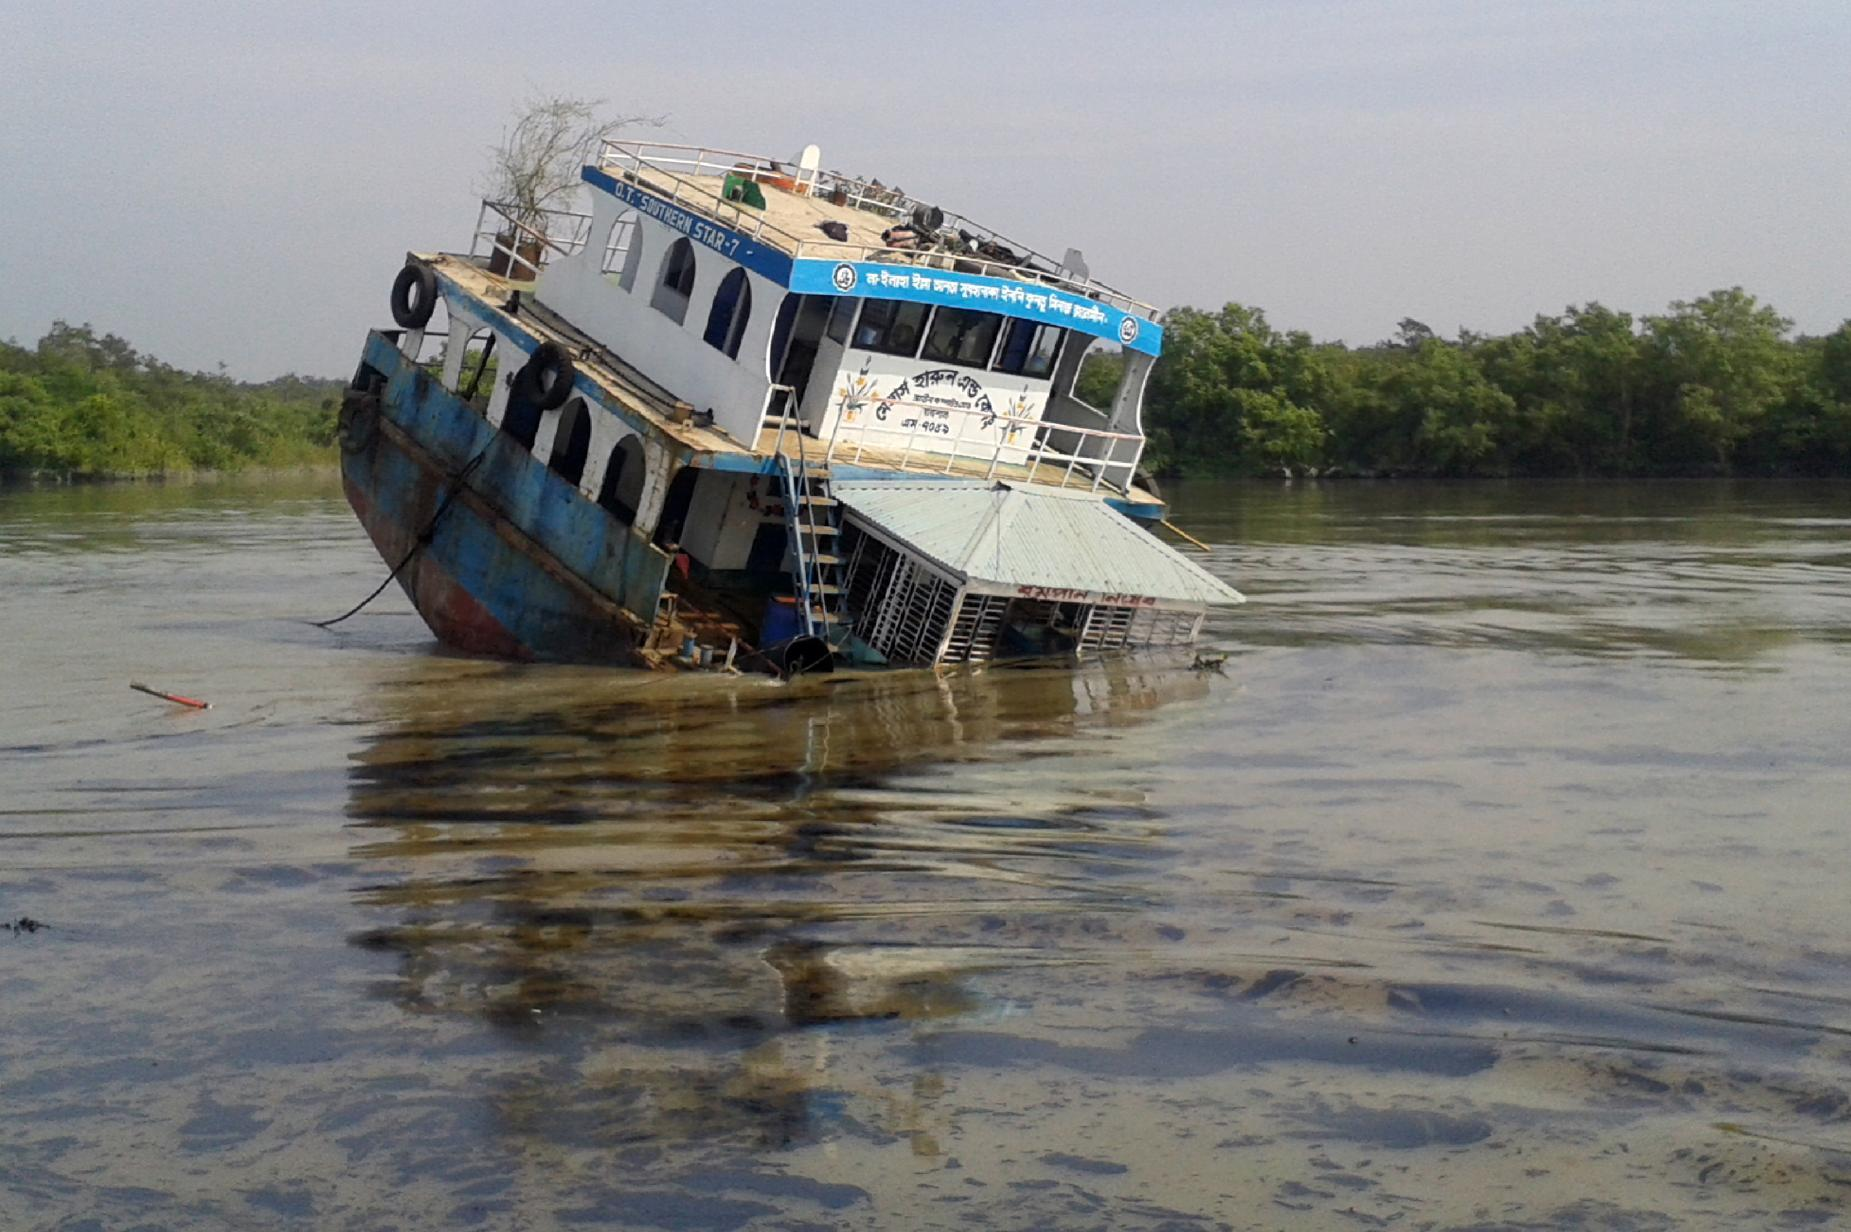 Bangladesh development threatens fragile Sundarbans mangroves